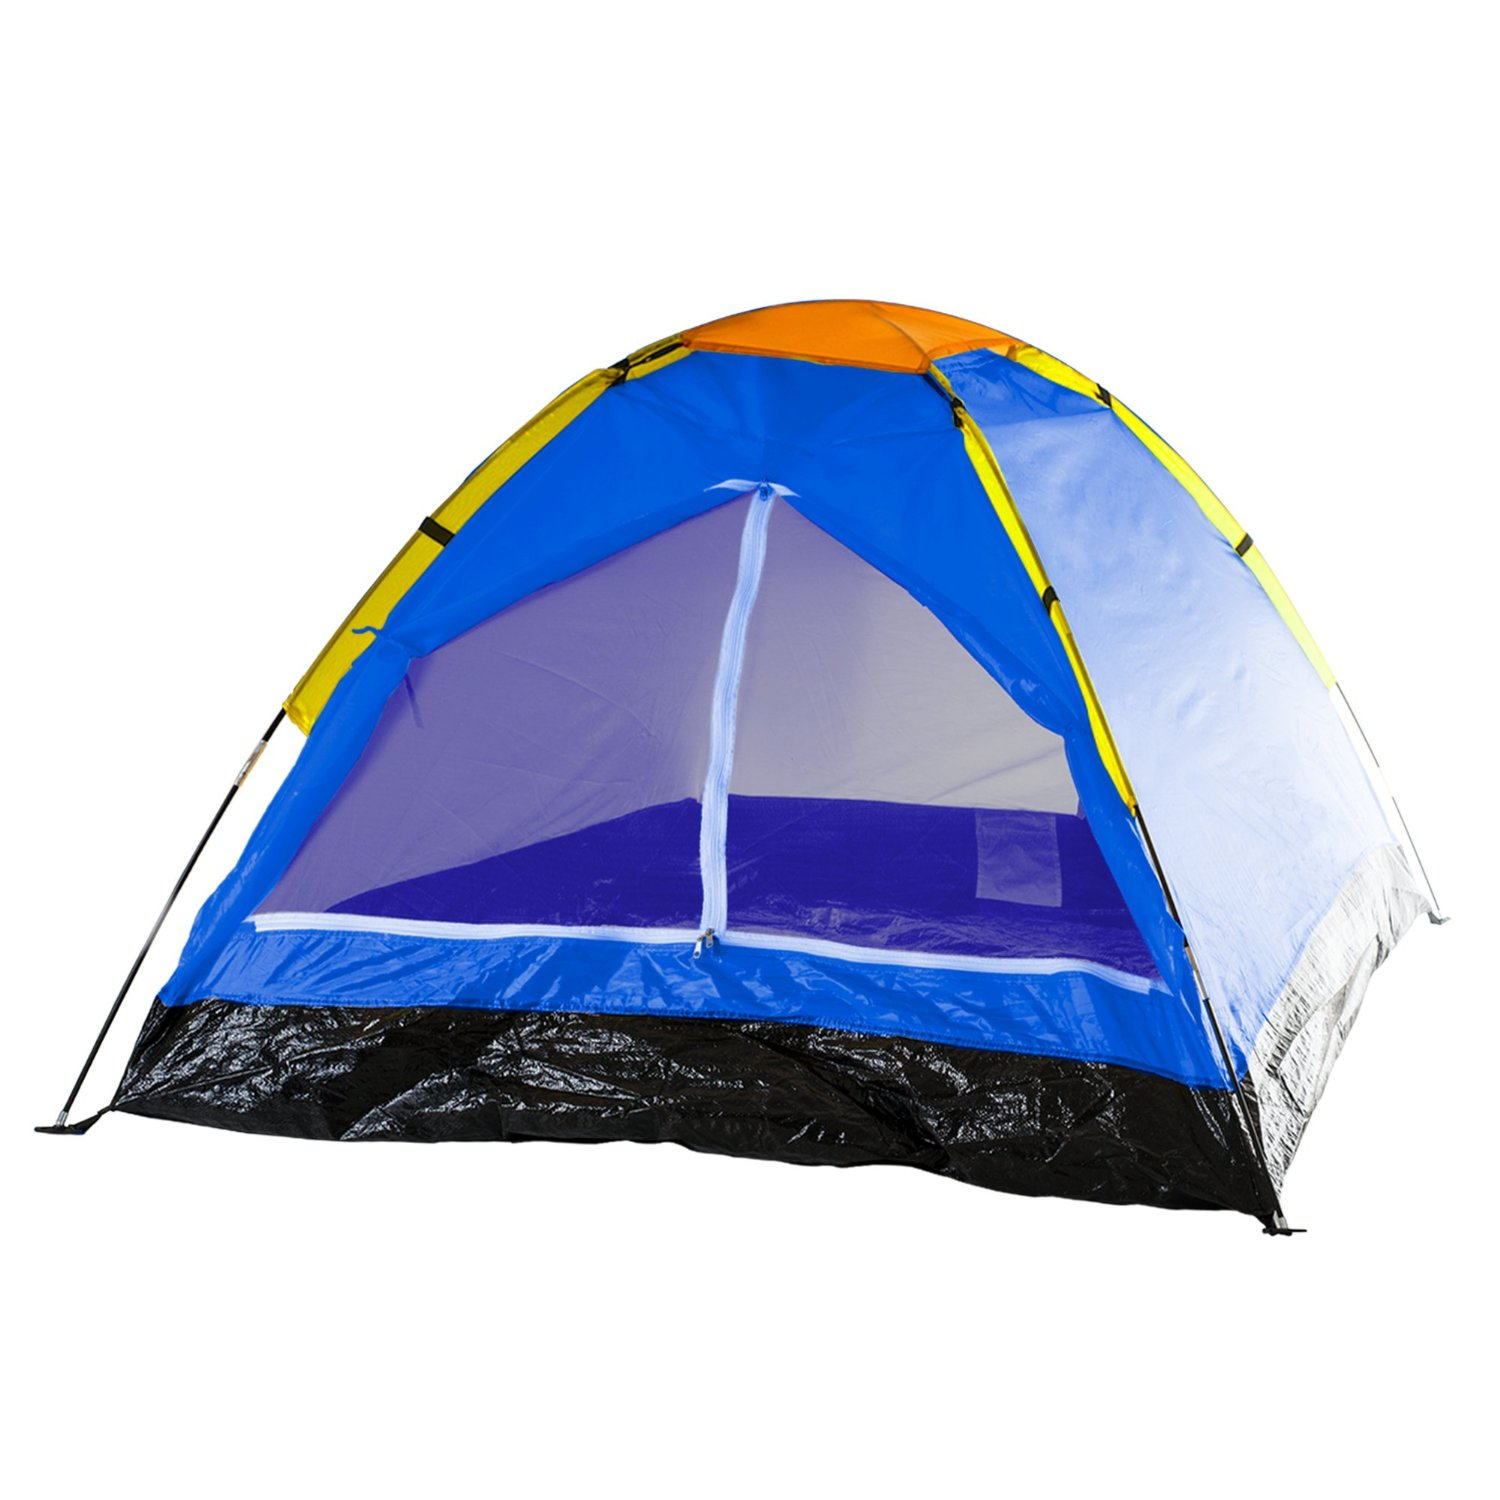 sc 1 st  Top Best Product Review Top Best Product Review & Top 10 Best Camping Tents in 2019 - Top Best Pro Review